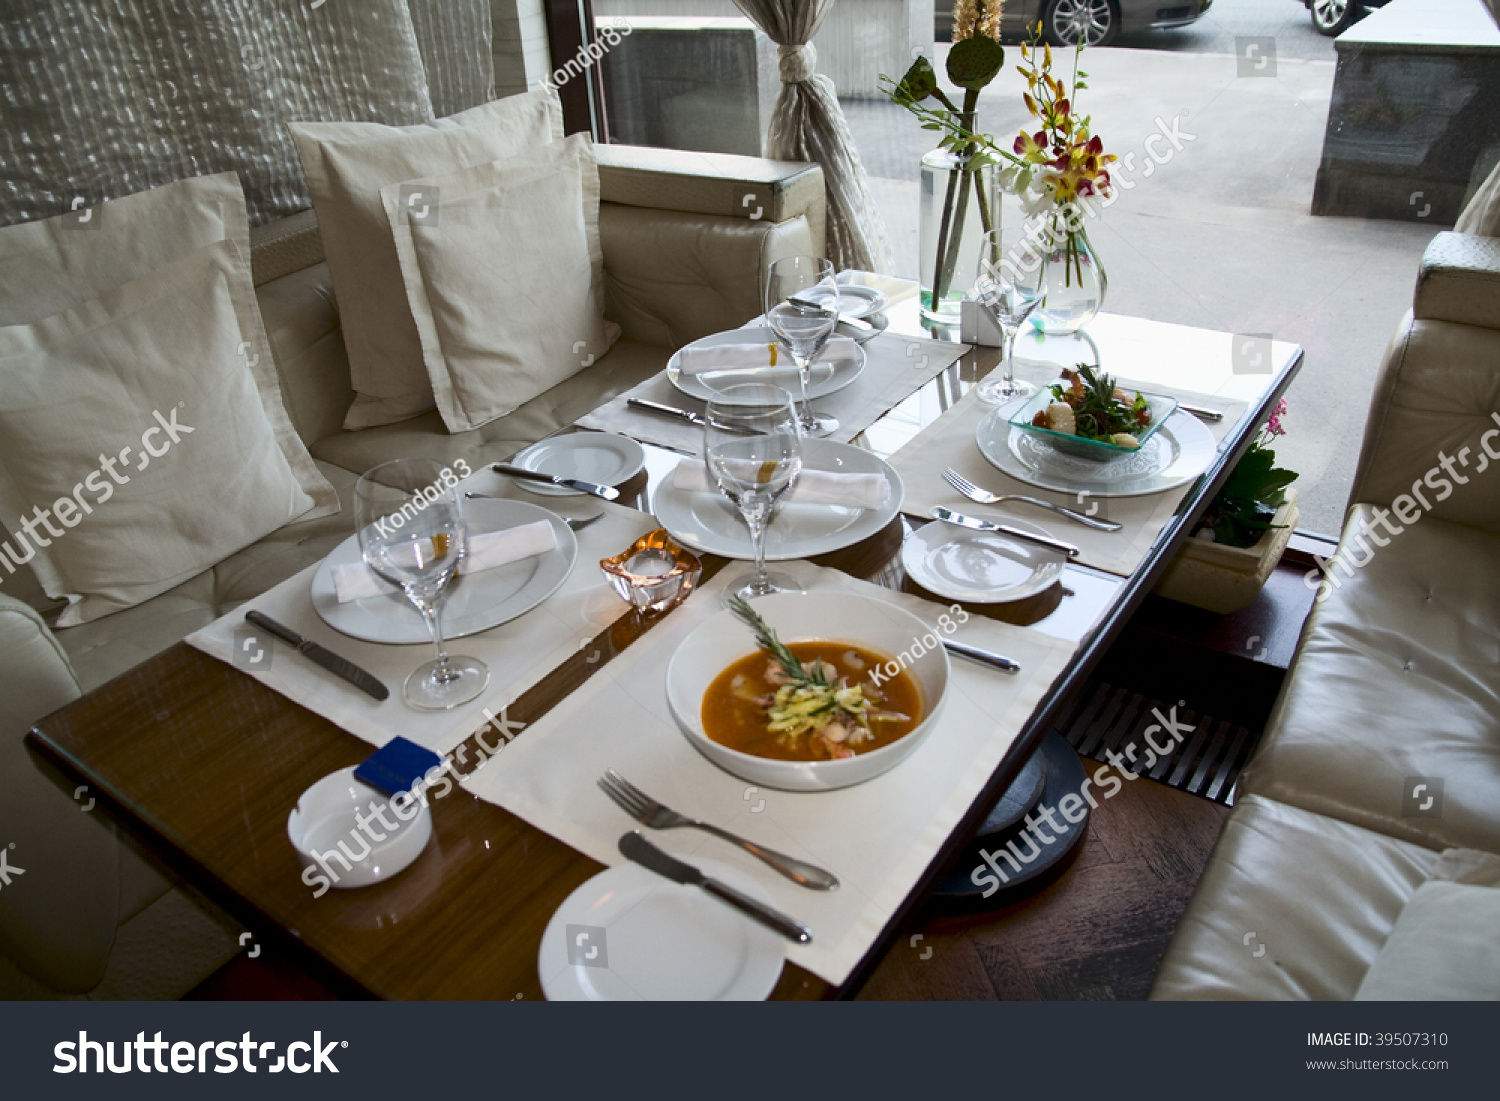 table arrangement expensive haute cuisine restaurant stock photo 39507310 shutterstock. Black Bedroom Furniture Sets. Home Design Ideas